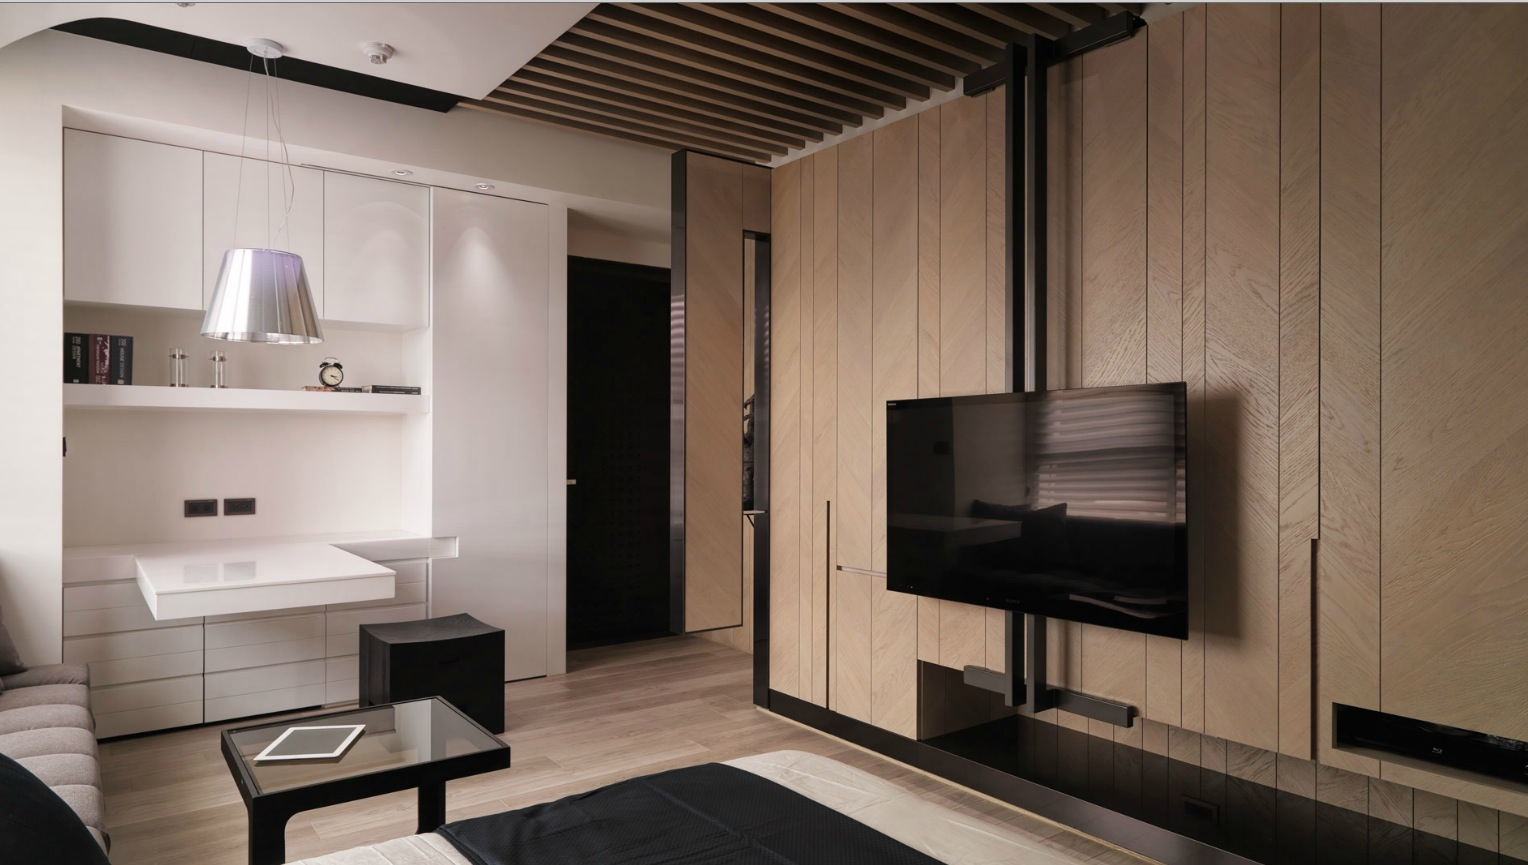 Today 2020 10 26 Small Tiny Taiwanese Apartment Layout Best Ideas For Us